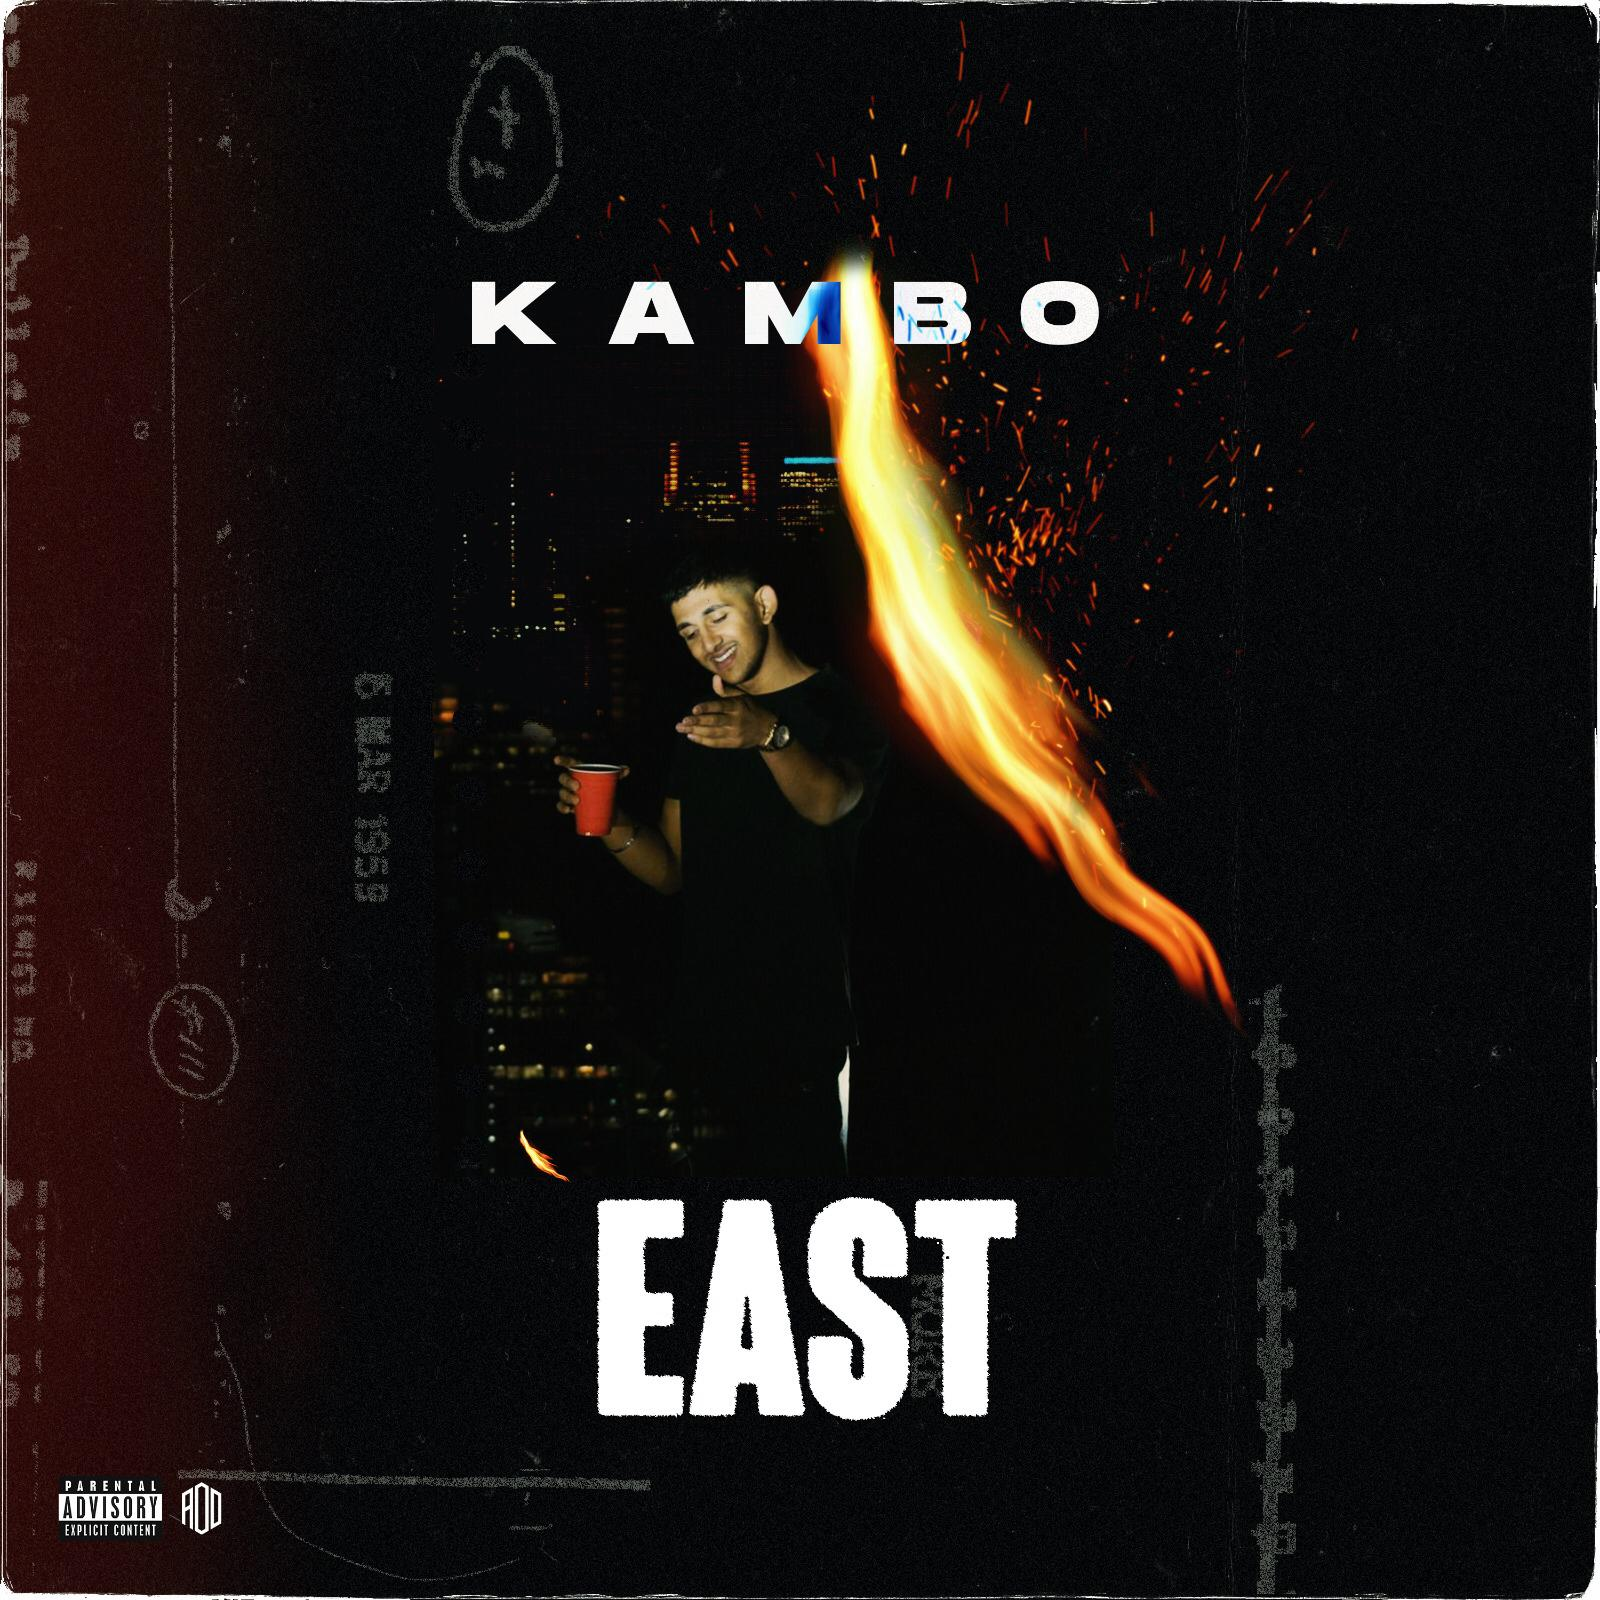 KAMBO RELEASES NEW VIDEO TRAILER EAST